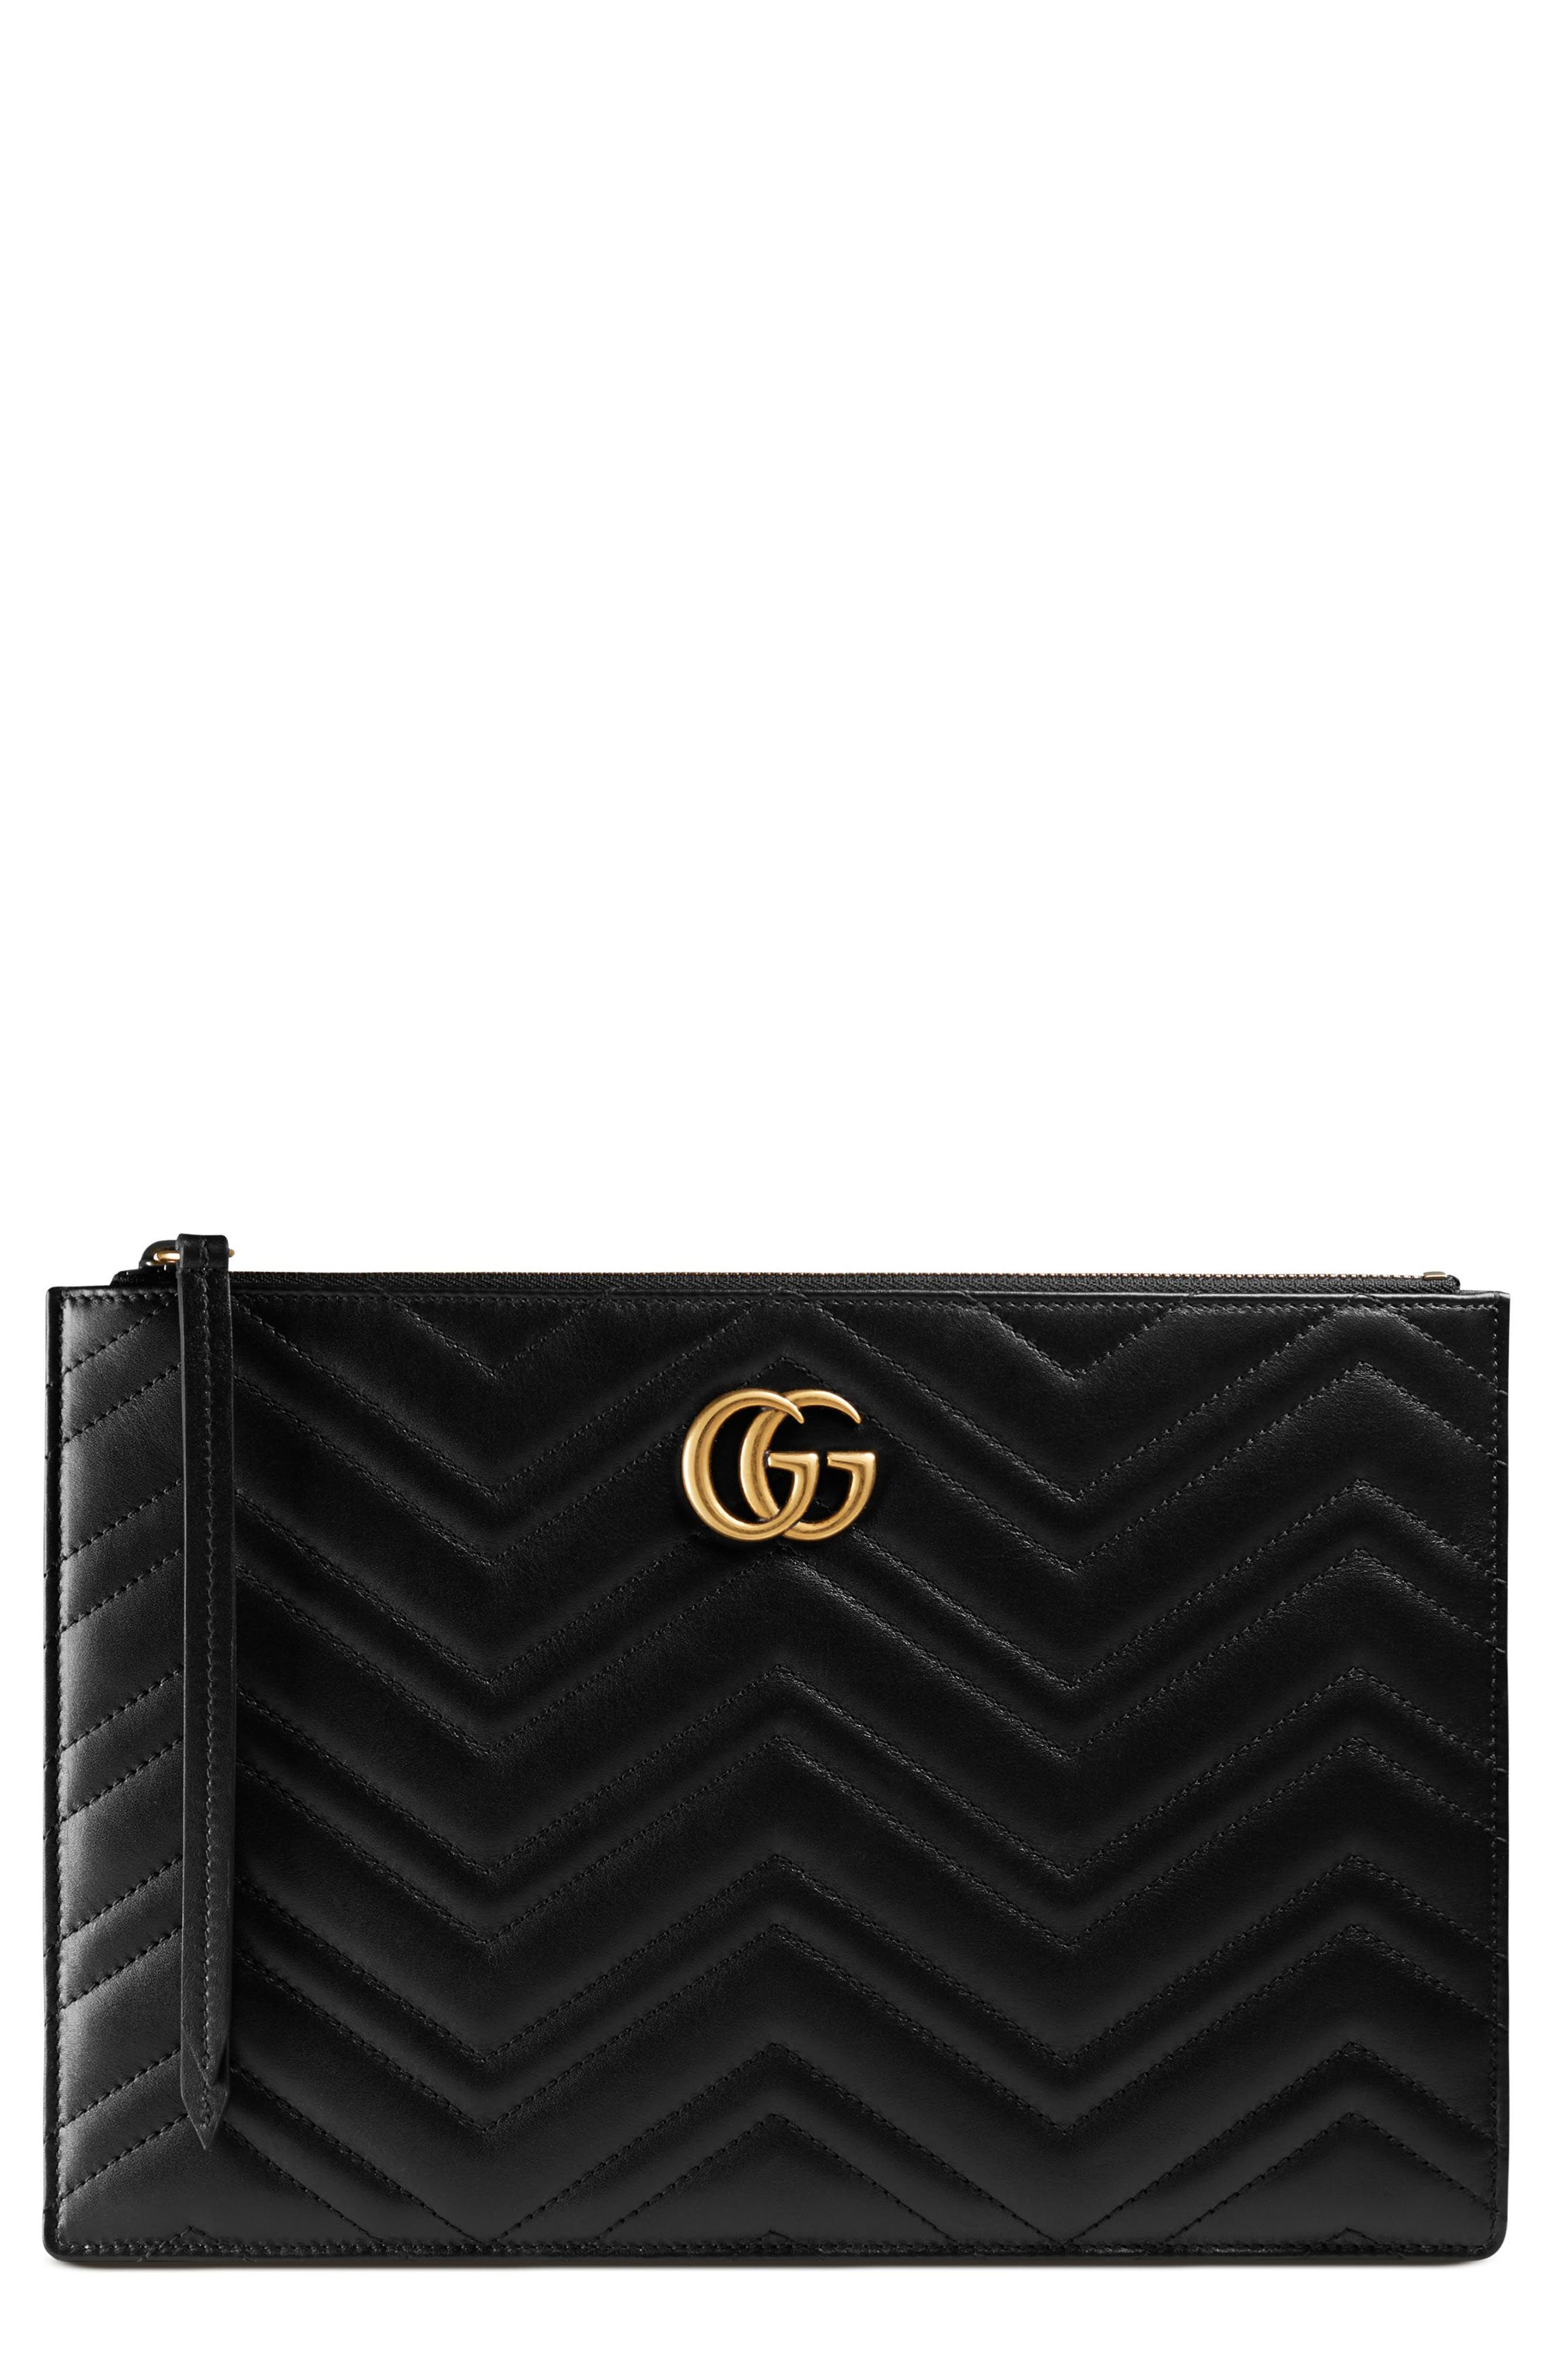 Alternate Image 1 Selected - Gucci GG Marmont Matelassé Leather Pouch